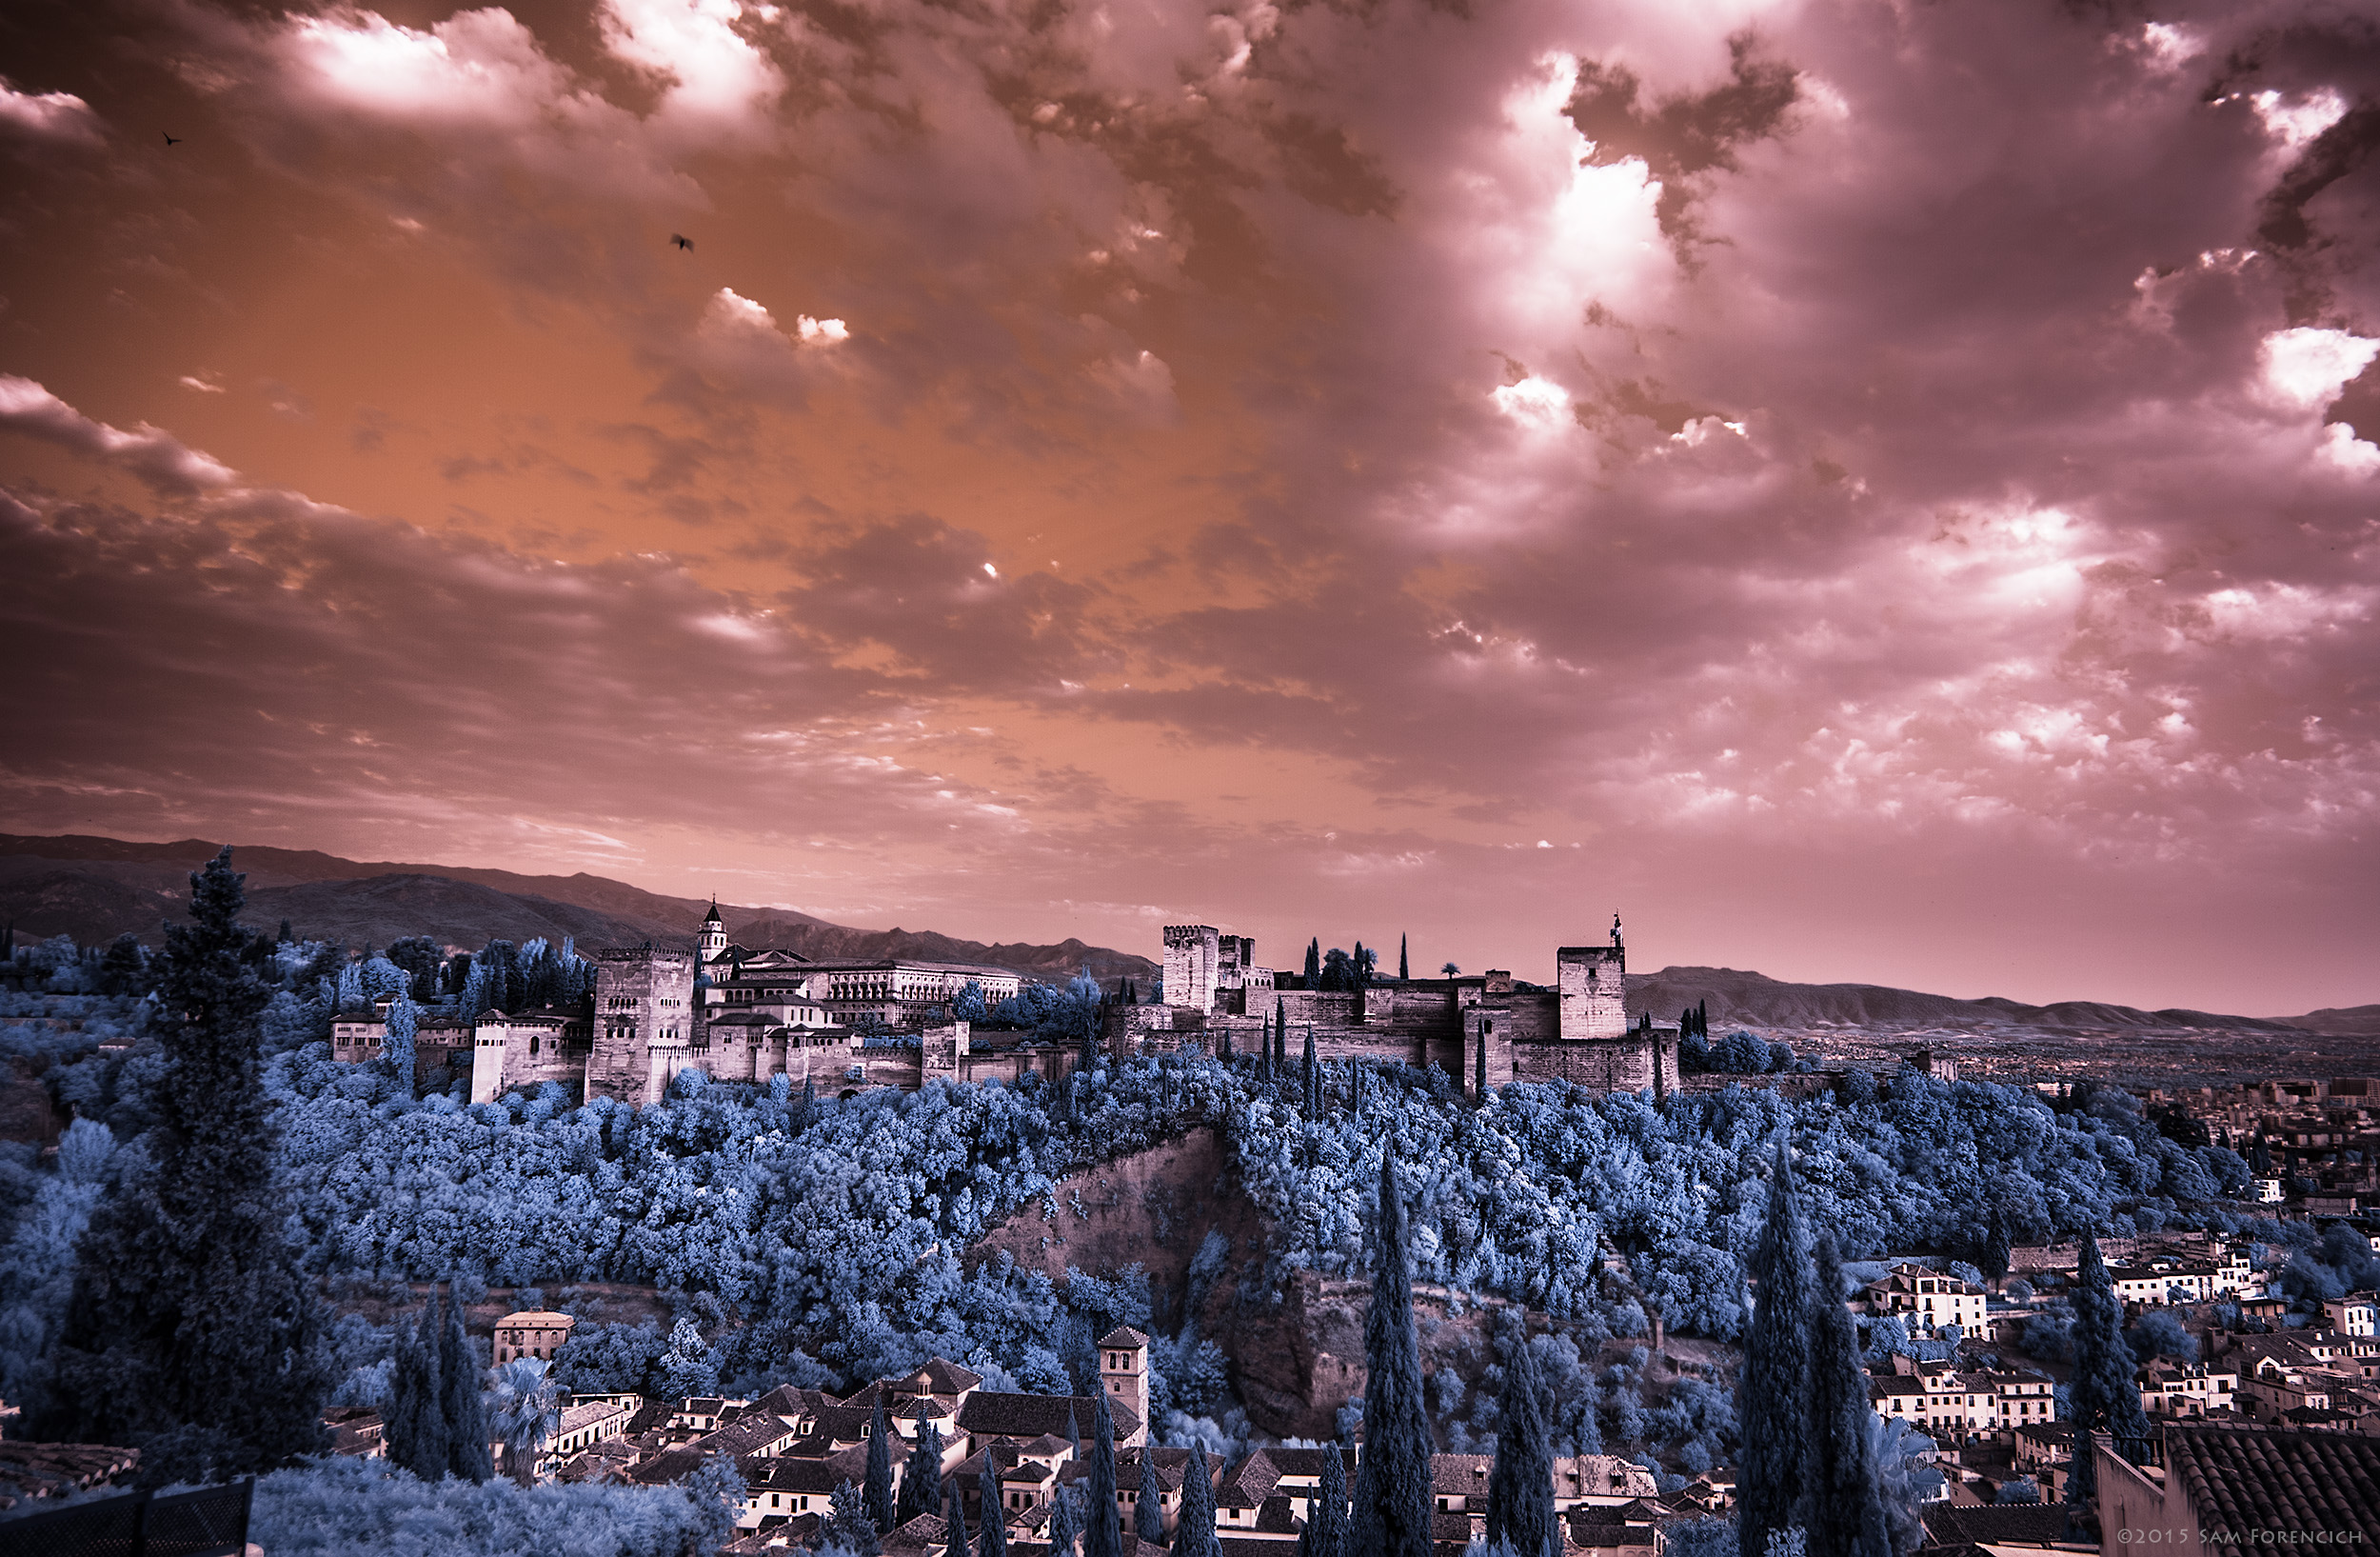 The Alhambra, a Moorish palace and fortress overlooks the city of Granada, Andalusia, Spain. The palace was built primarily between 1238 and 1358, during the reigns of Ibn al-Ahmar, founder of the Nasrid Dynasty and his successors. Photographed from Mirador de San Nicolas. Channel swapped infrared, IR converted Canon 5D Mark II.  ©2015 Sam Forencich